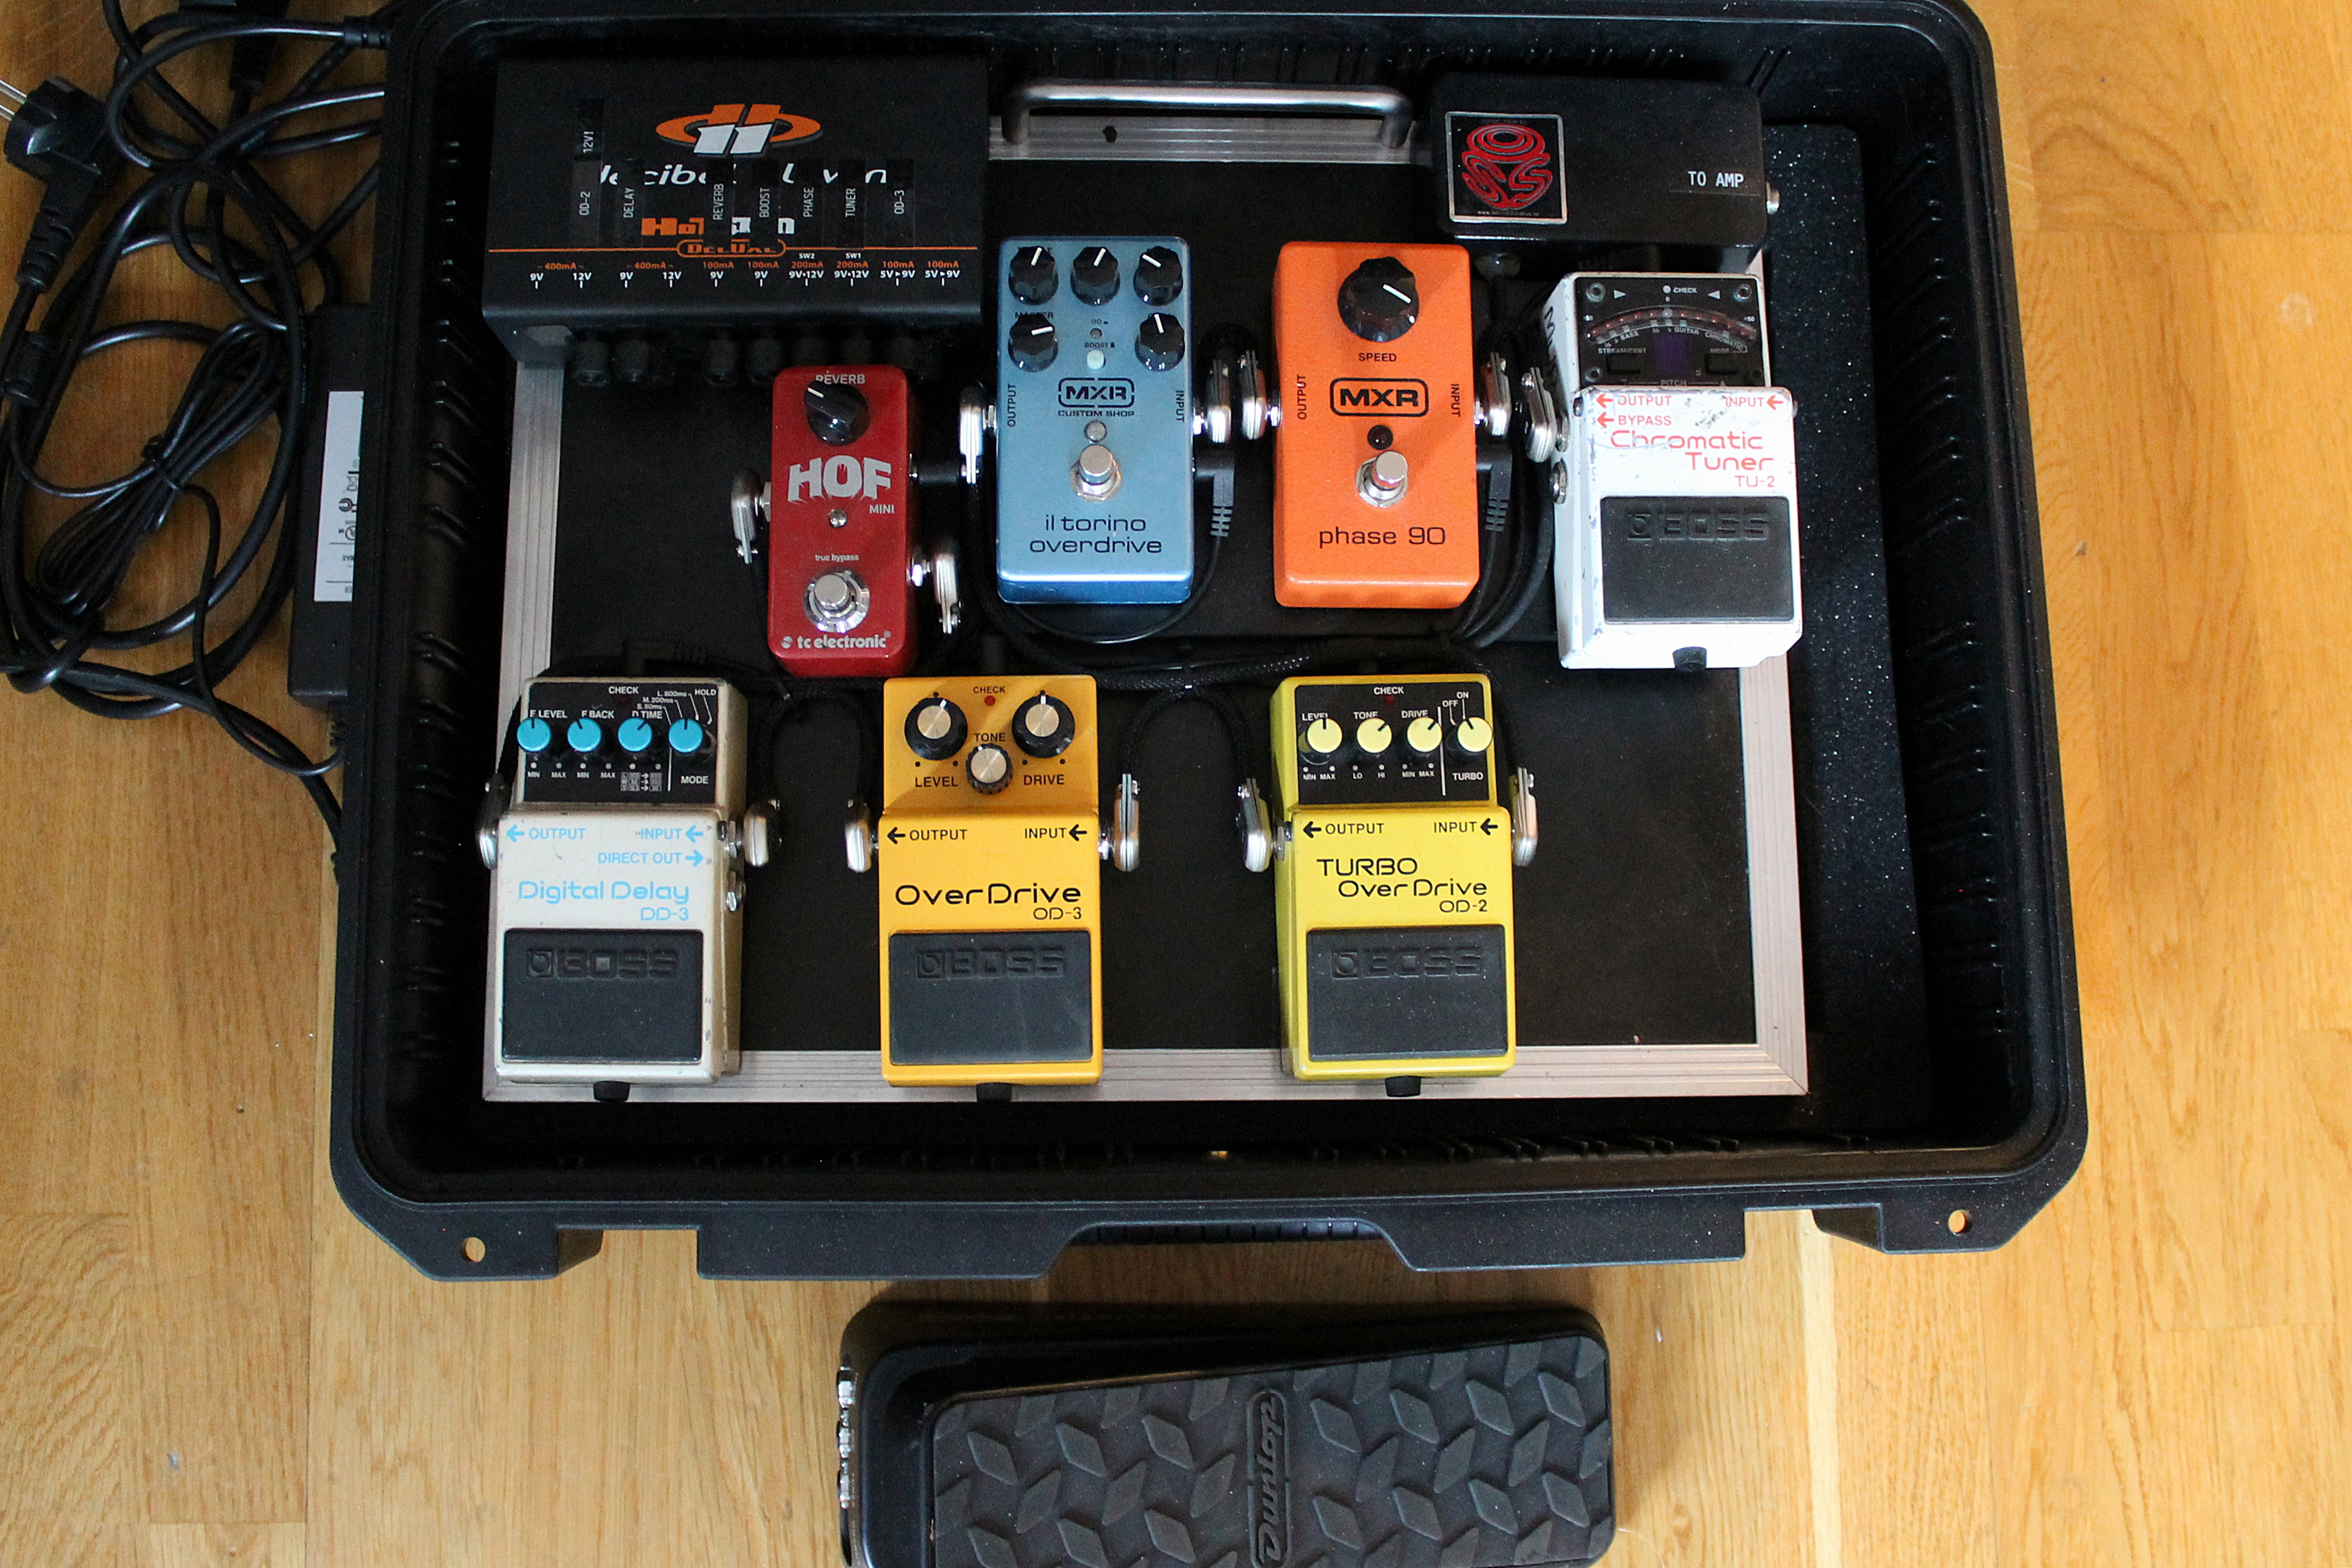 Anekdoten Pedal Board by Marty Willson-Piper